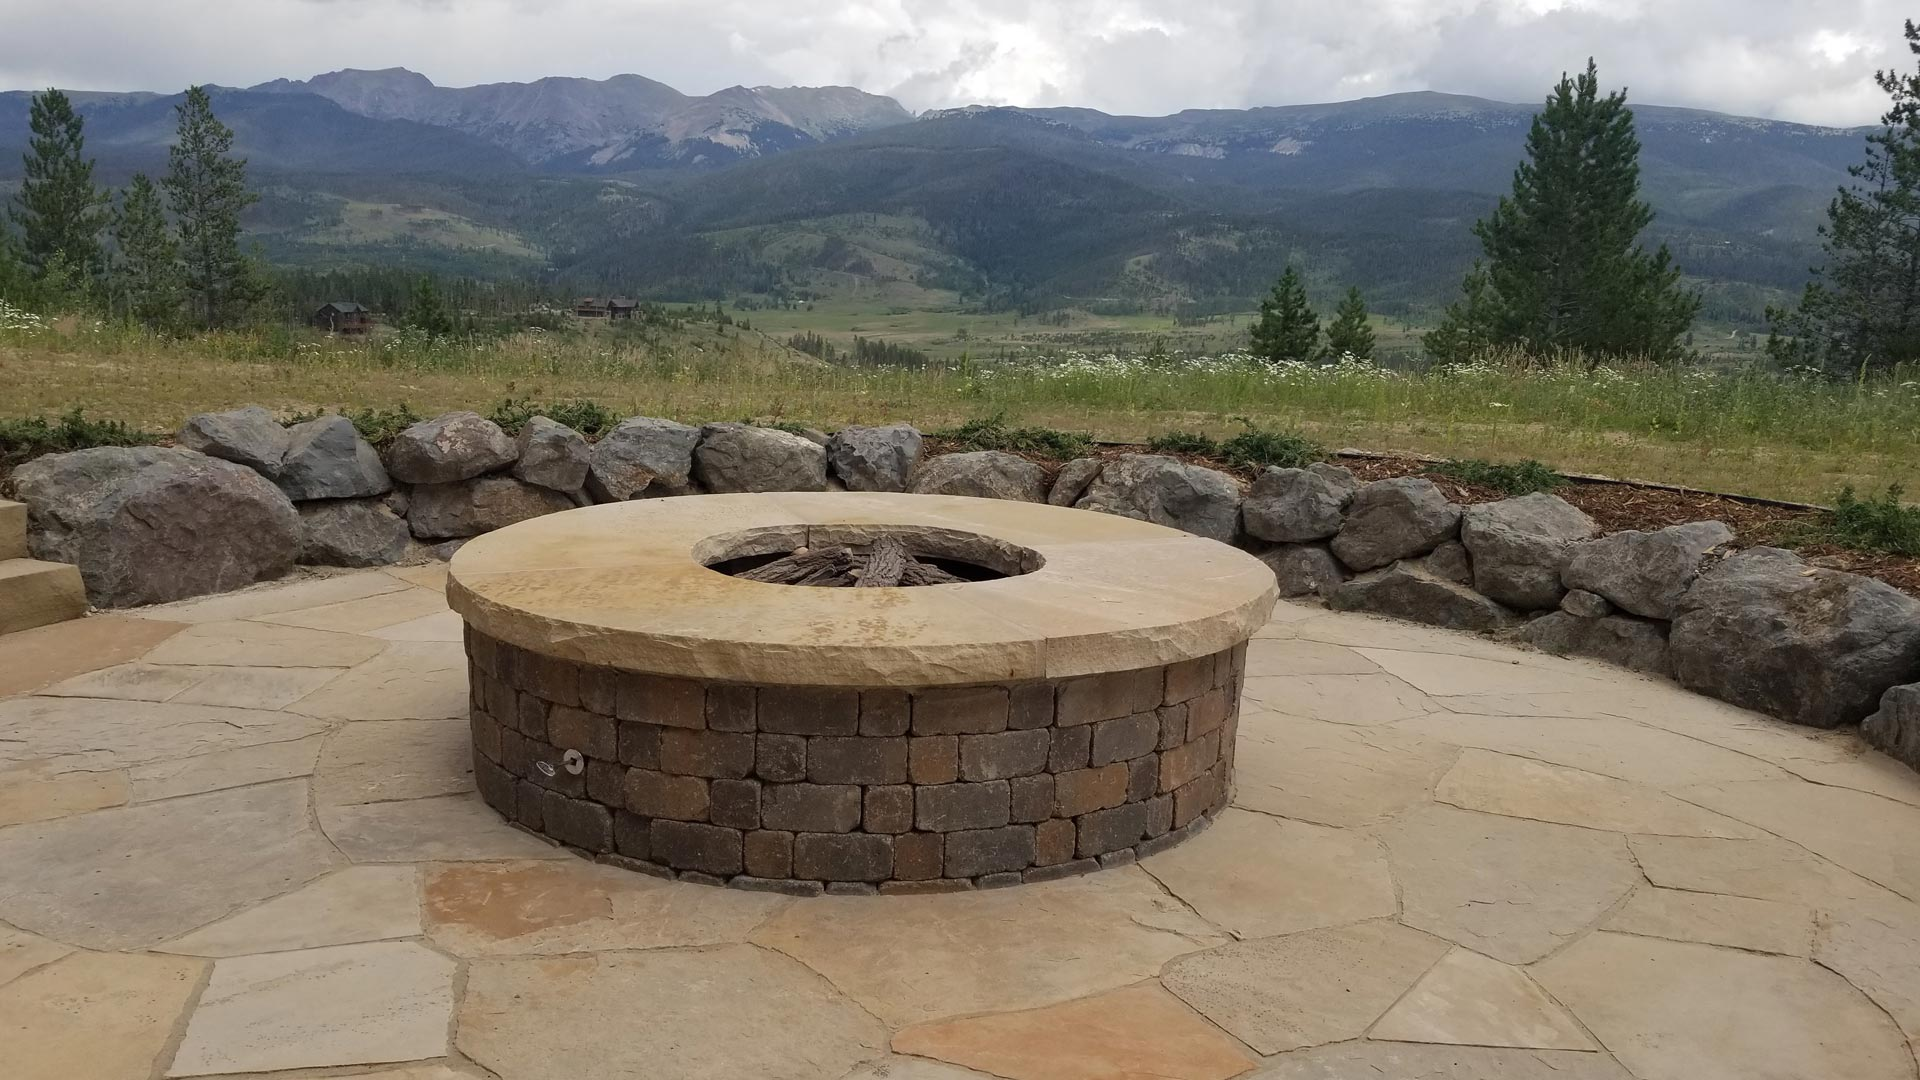 A round fire pit with a flagstone patio and rock retaining wall overlooking the mountains in Winter Park, CO.